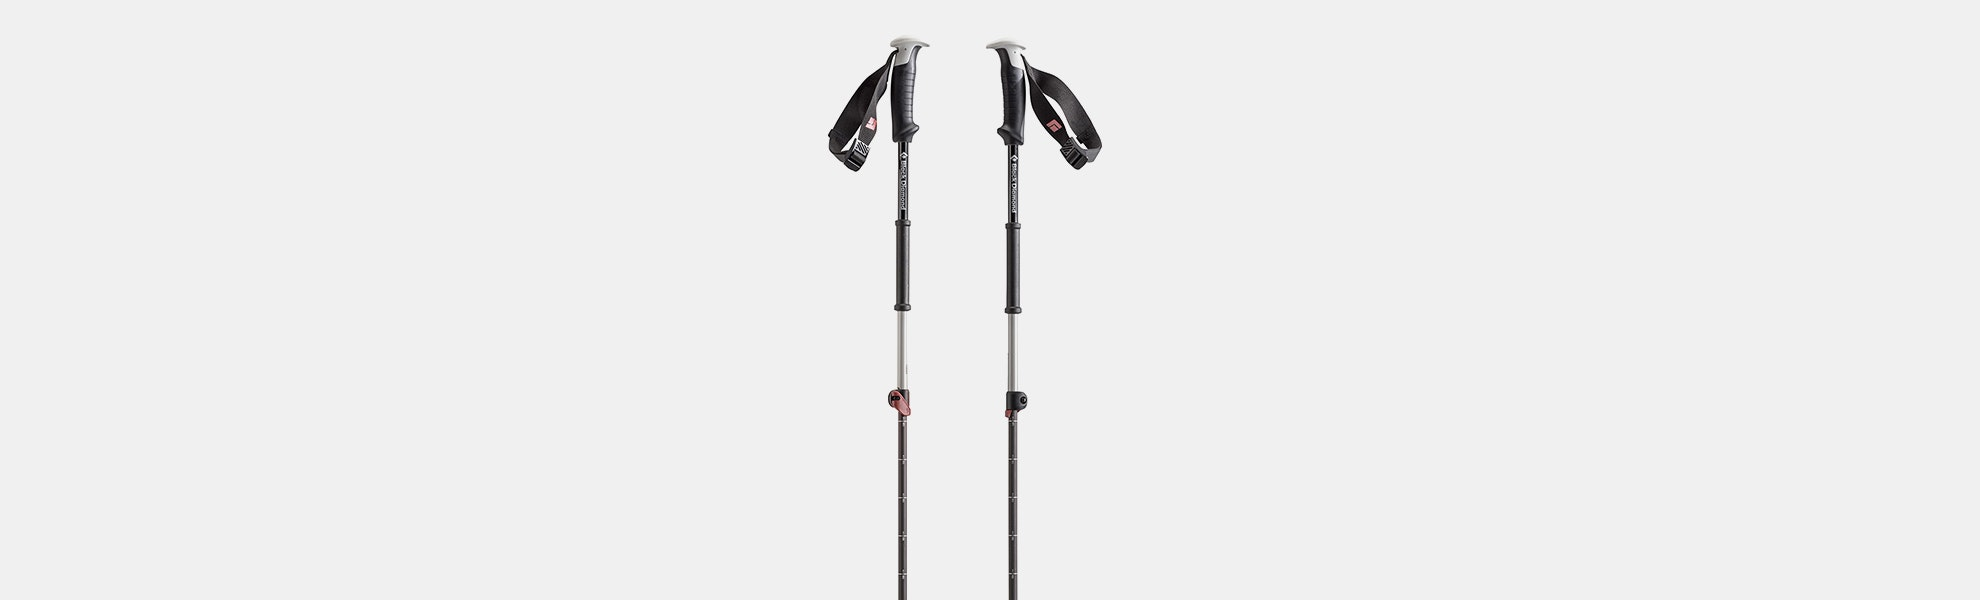 Black Diamond Razor Carbon Ski Poles